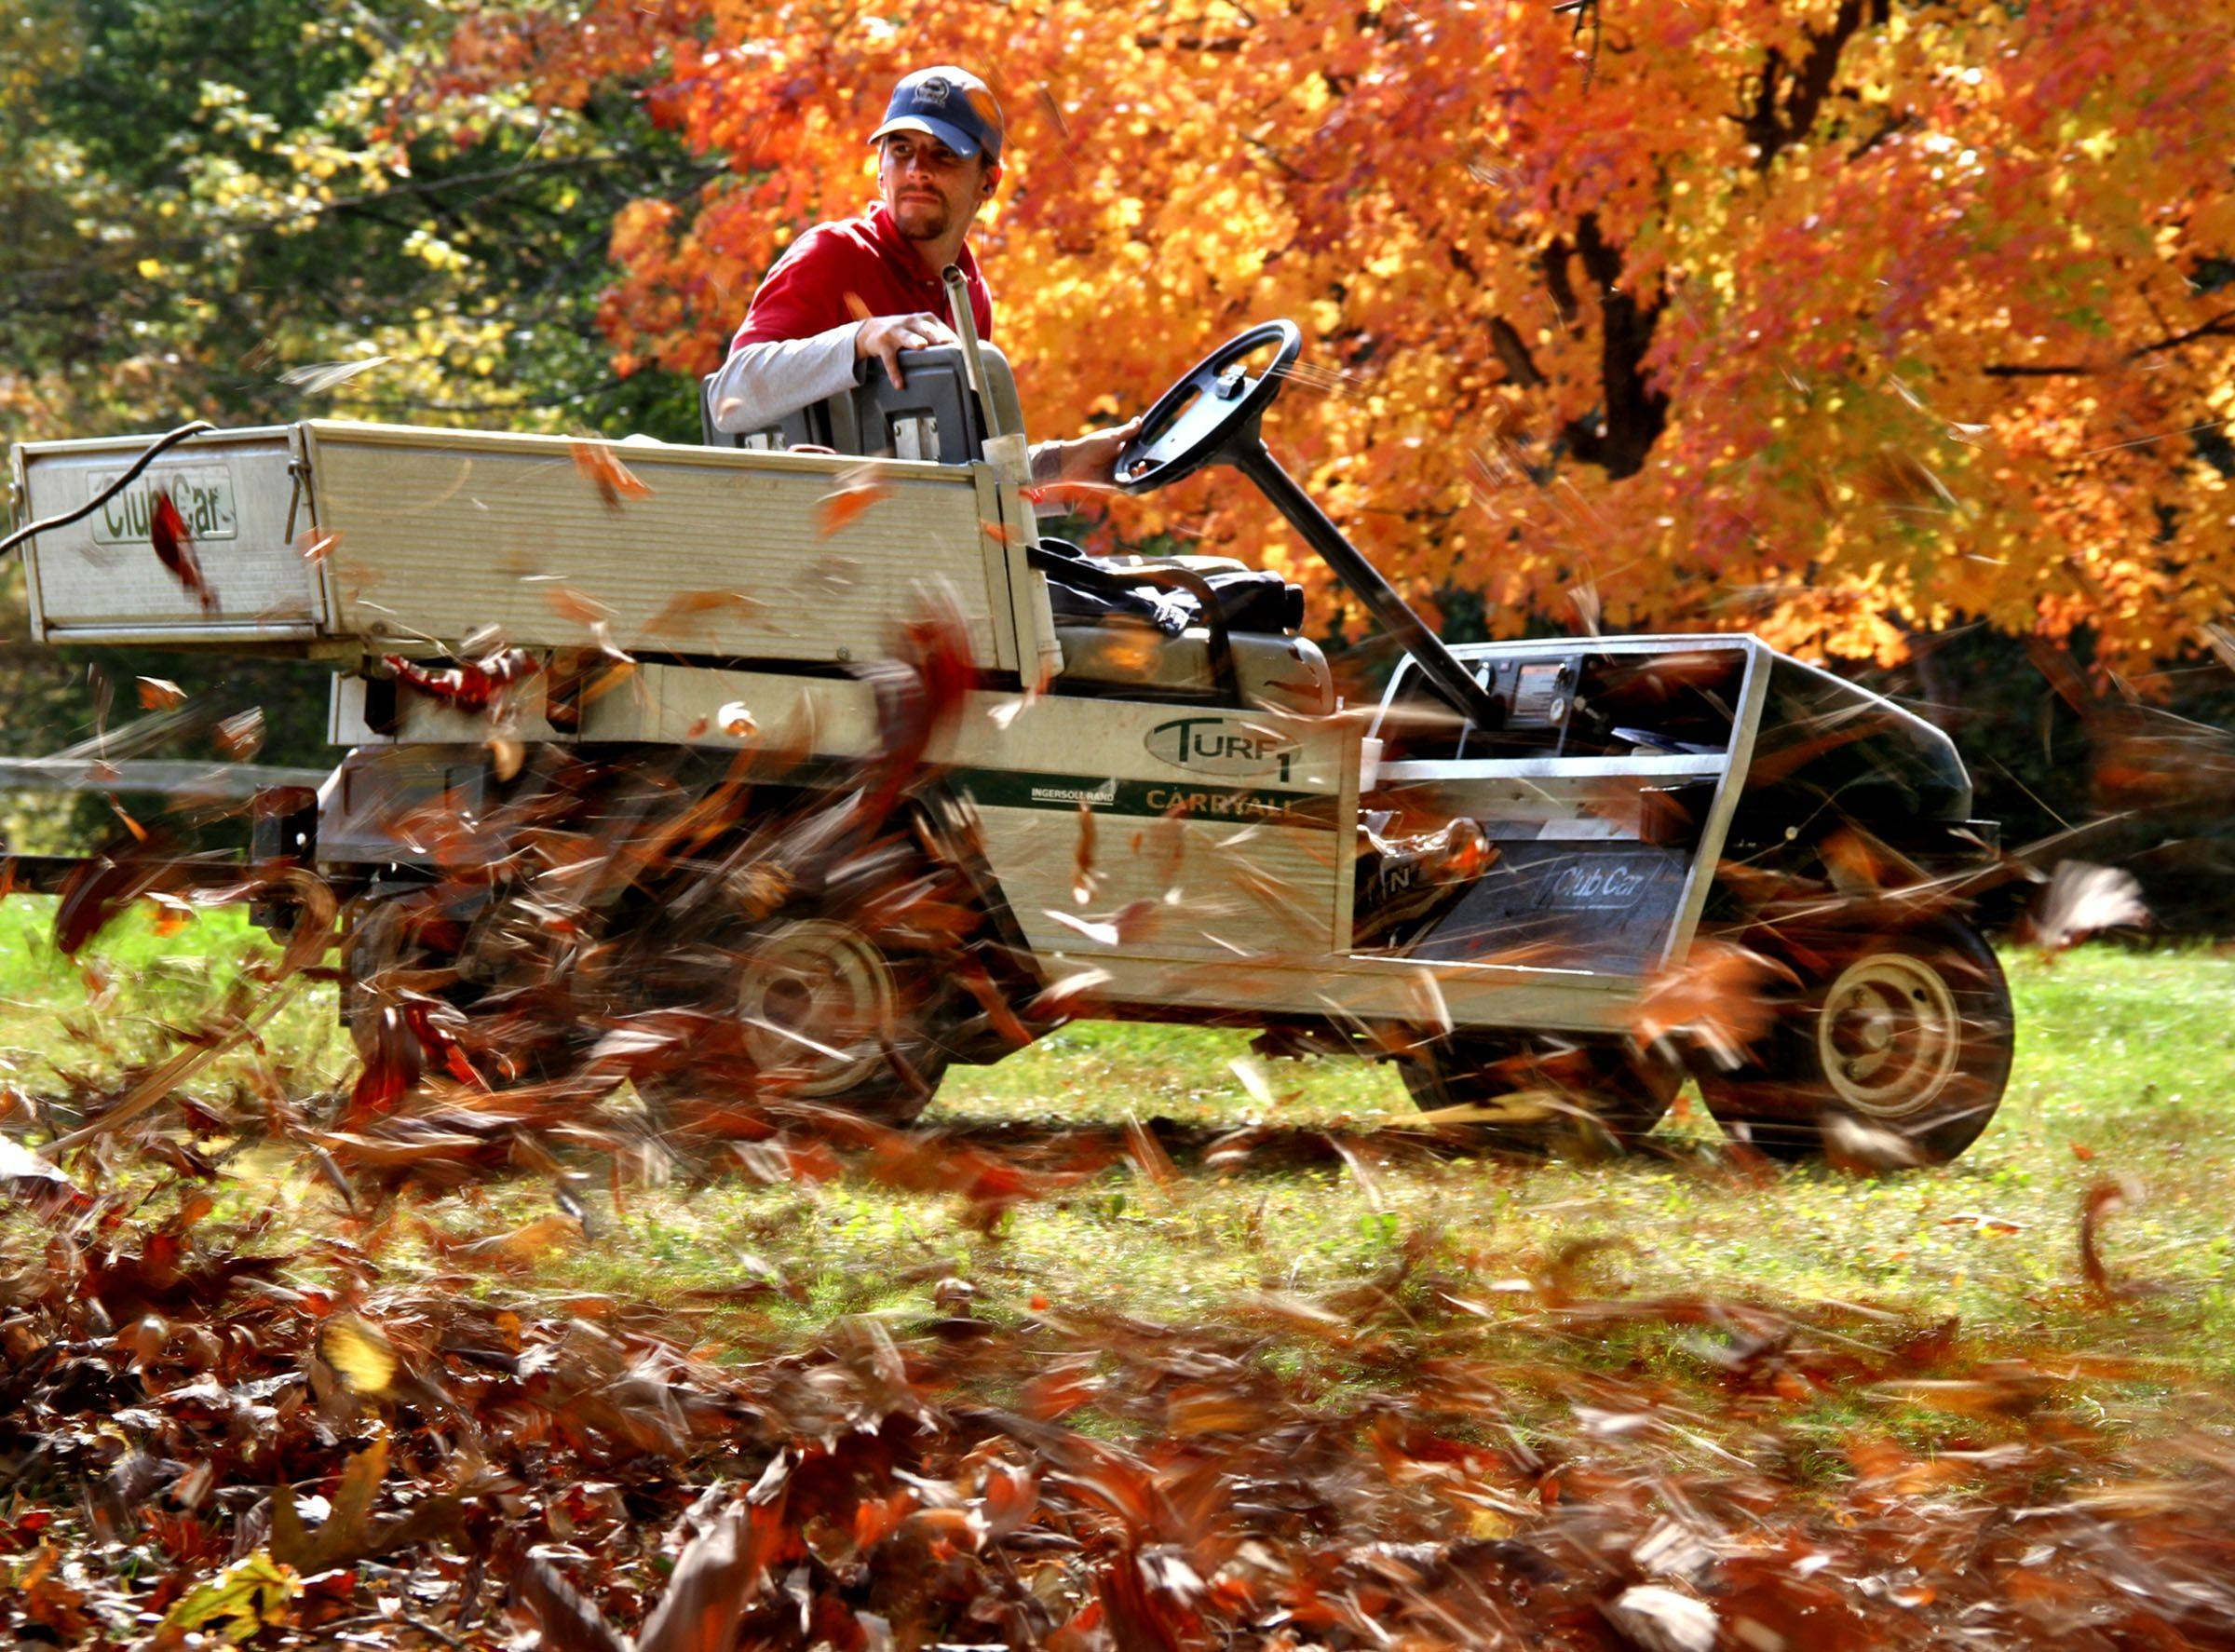 Jason McIntyre, golf course superintendent at Highland Woods Forest Preserve drives a golf cart pulling a large leaf blower near the parking lot of the course in Hoffman Estates on Tuesday, October 12.